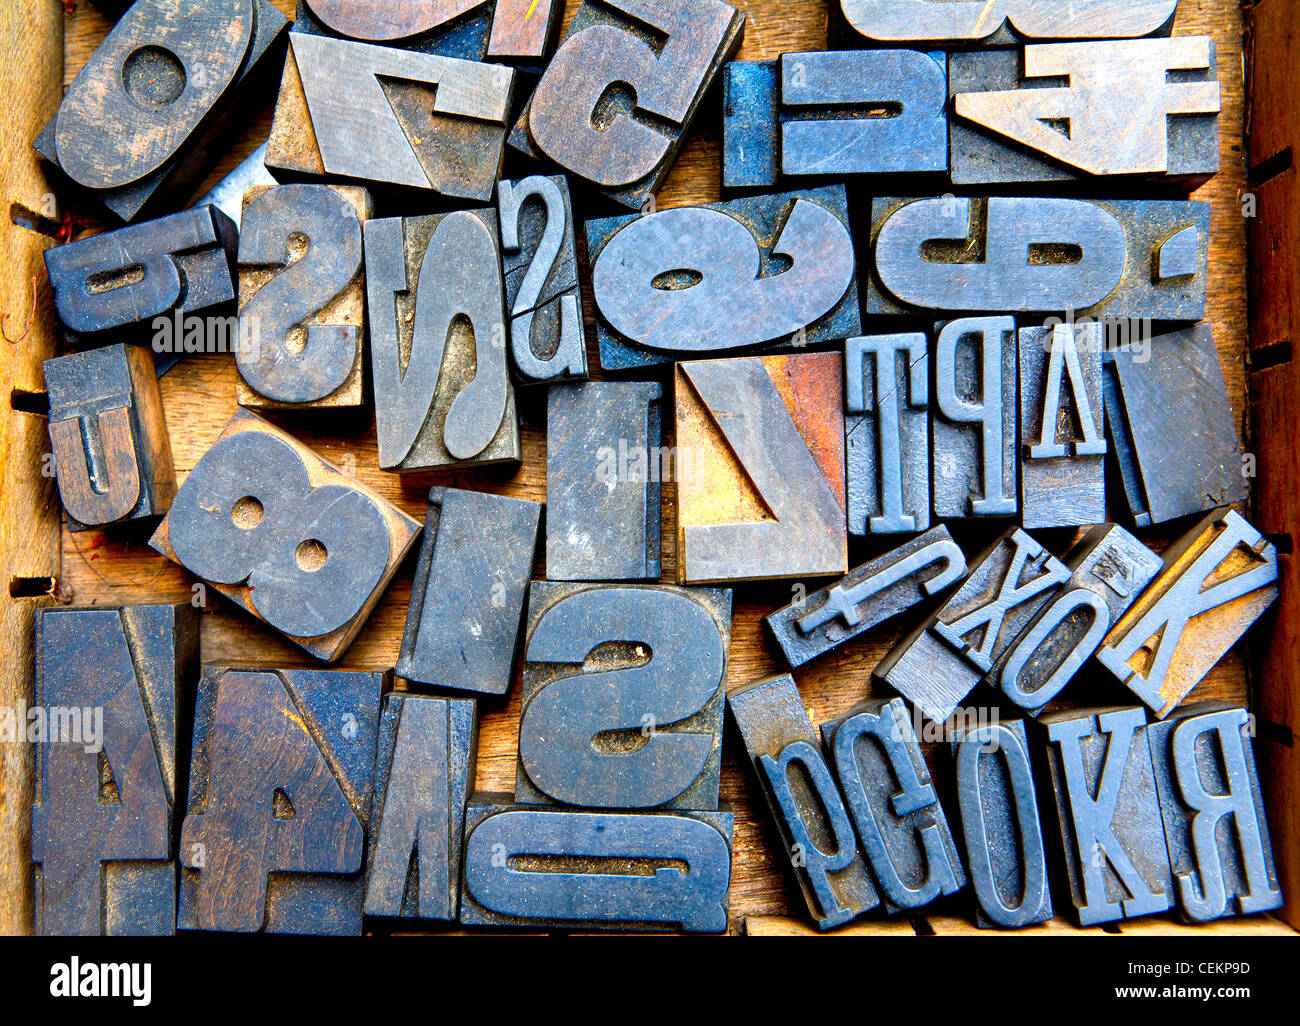 many old woodent fonts in wooden case, many letters - Stock Image